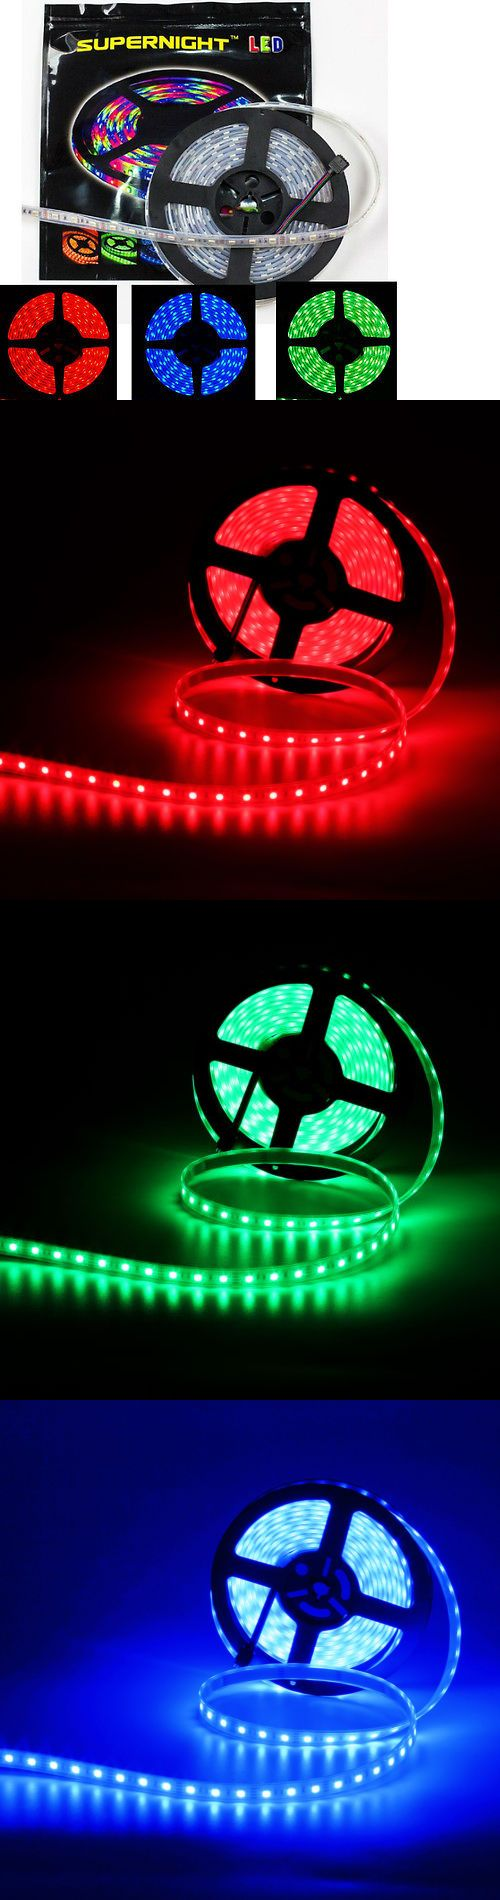 String Lights Fairy Lights 116022: 1 2 5 10Pcs 16.4Ft 300Leds 5050 Smd Rgb Led Strip Light Silicone-Tube Waterproof -> BUY IT NOW ONLY: $106.9 on eBay!